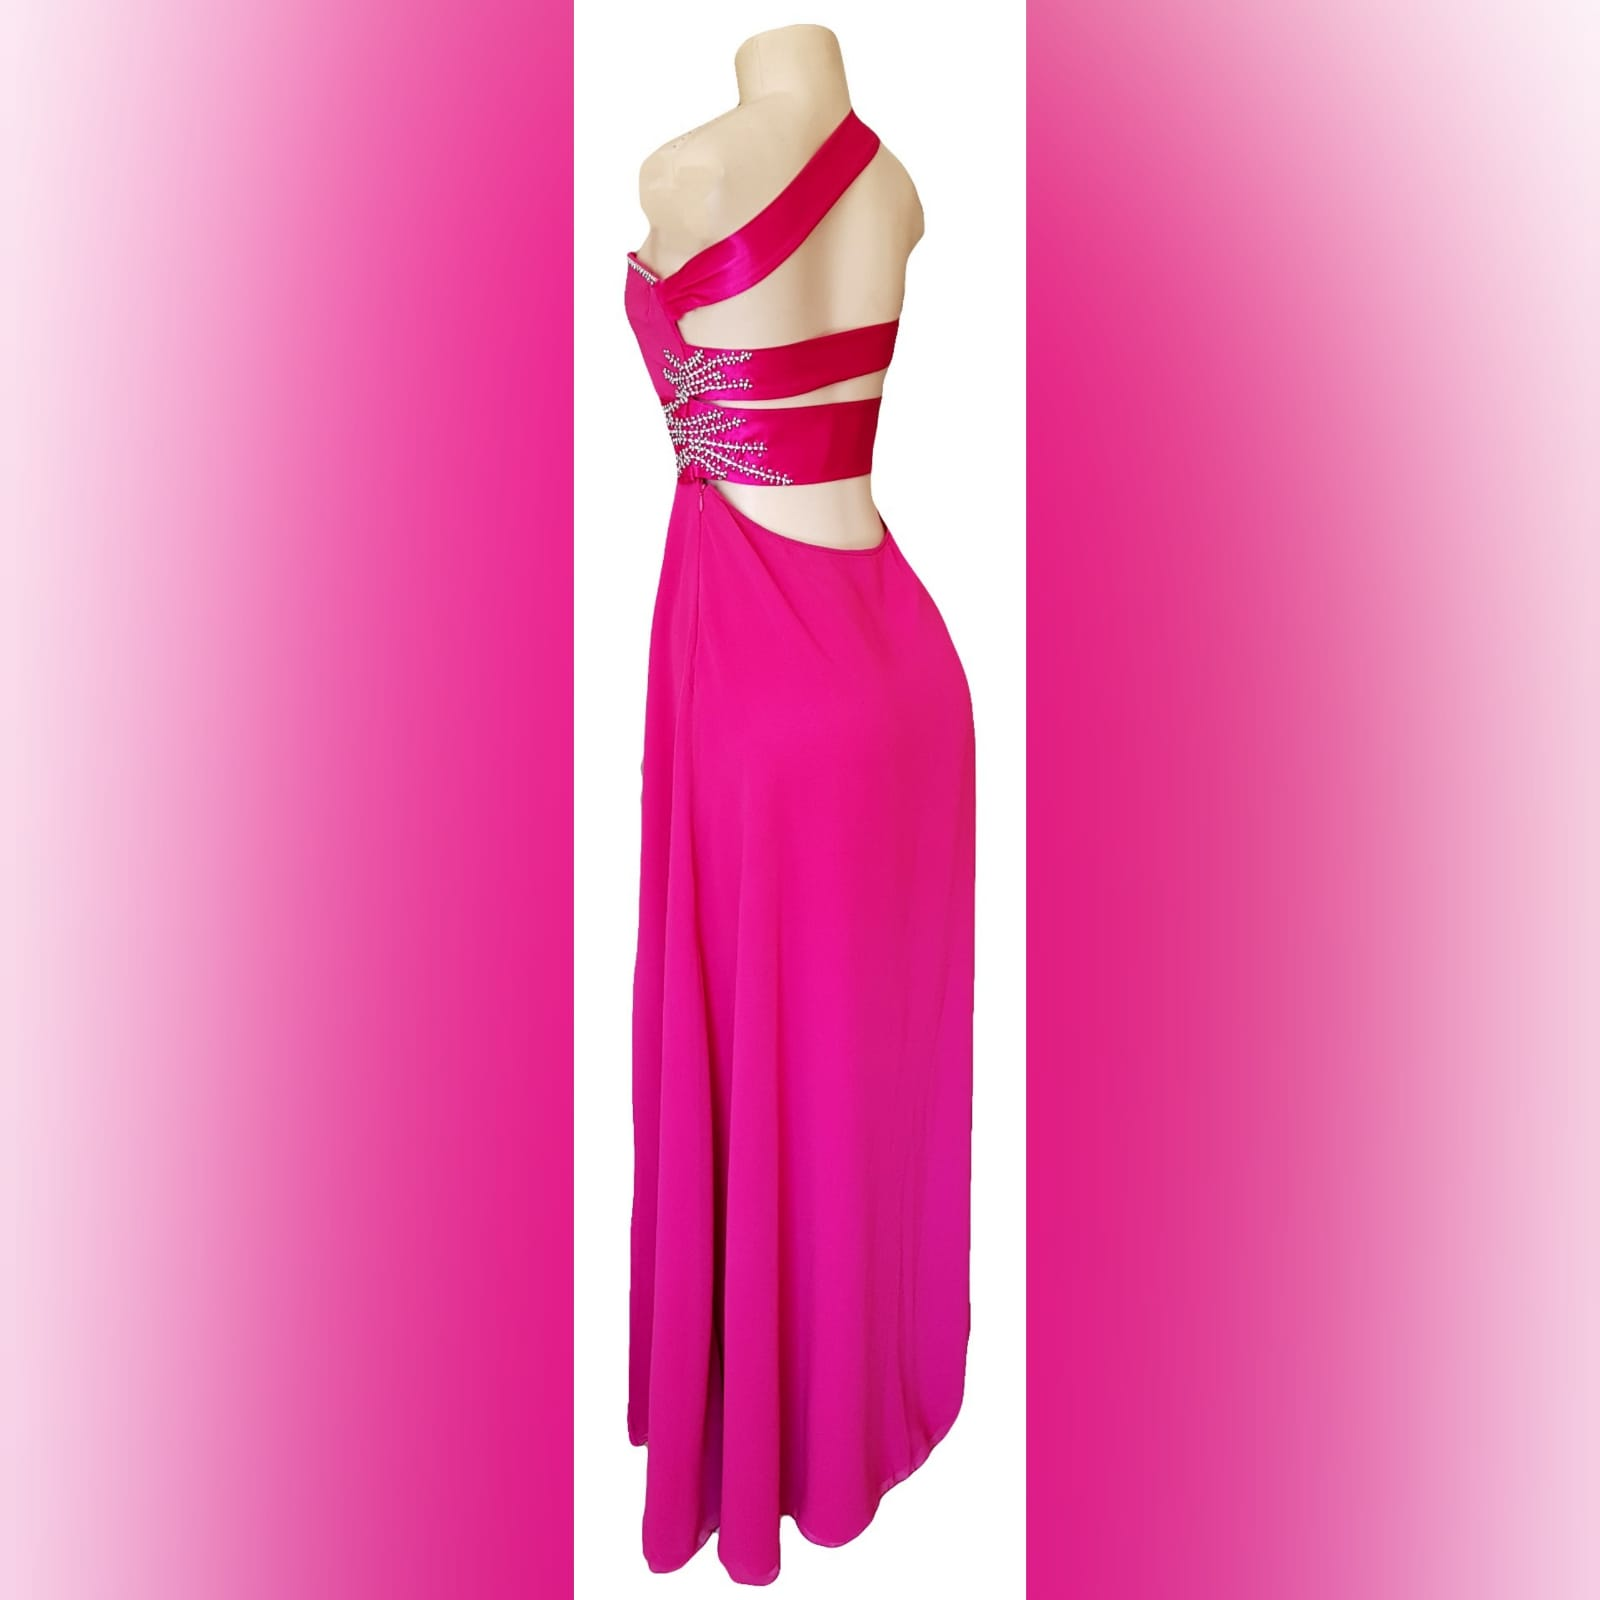 Cerise pink long flowy sexy evening dress 1 cerise pink long flowy sexy evening dress with a slit. One shoulder with a sweetheart neckline. Open back detailed with wide straps. Pleated belt. Dress beaded with silver.